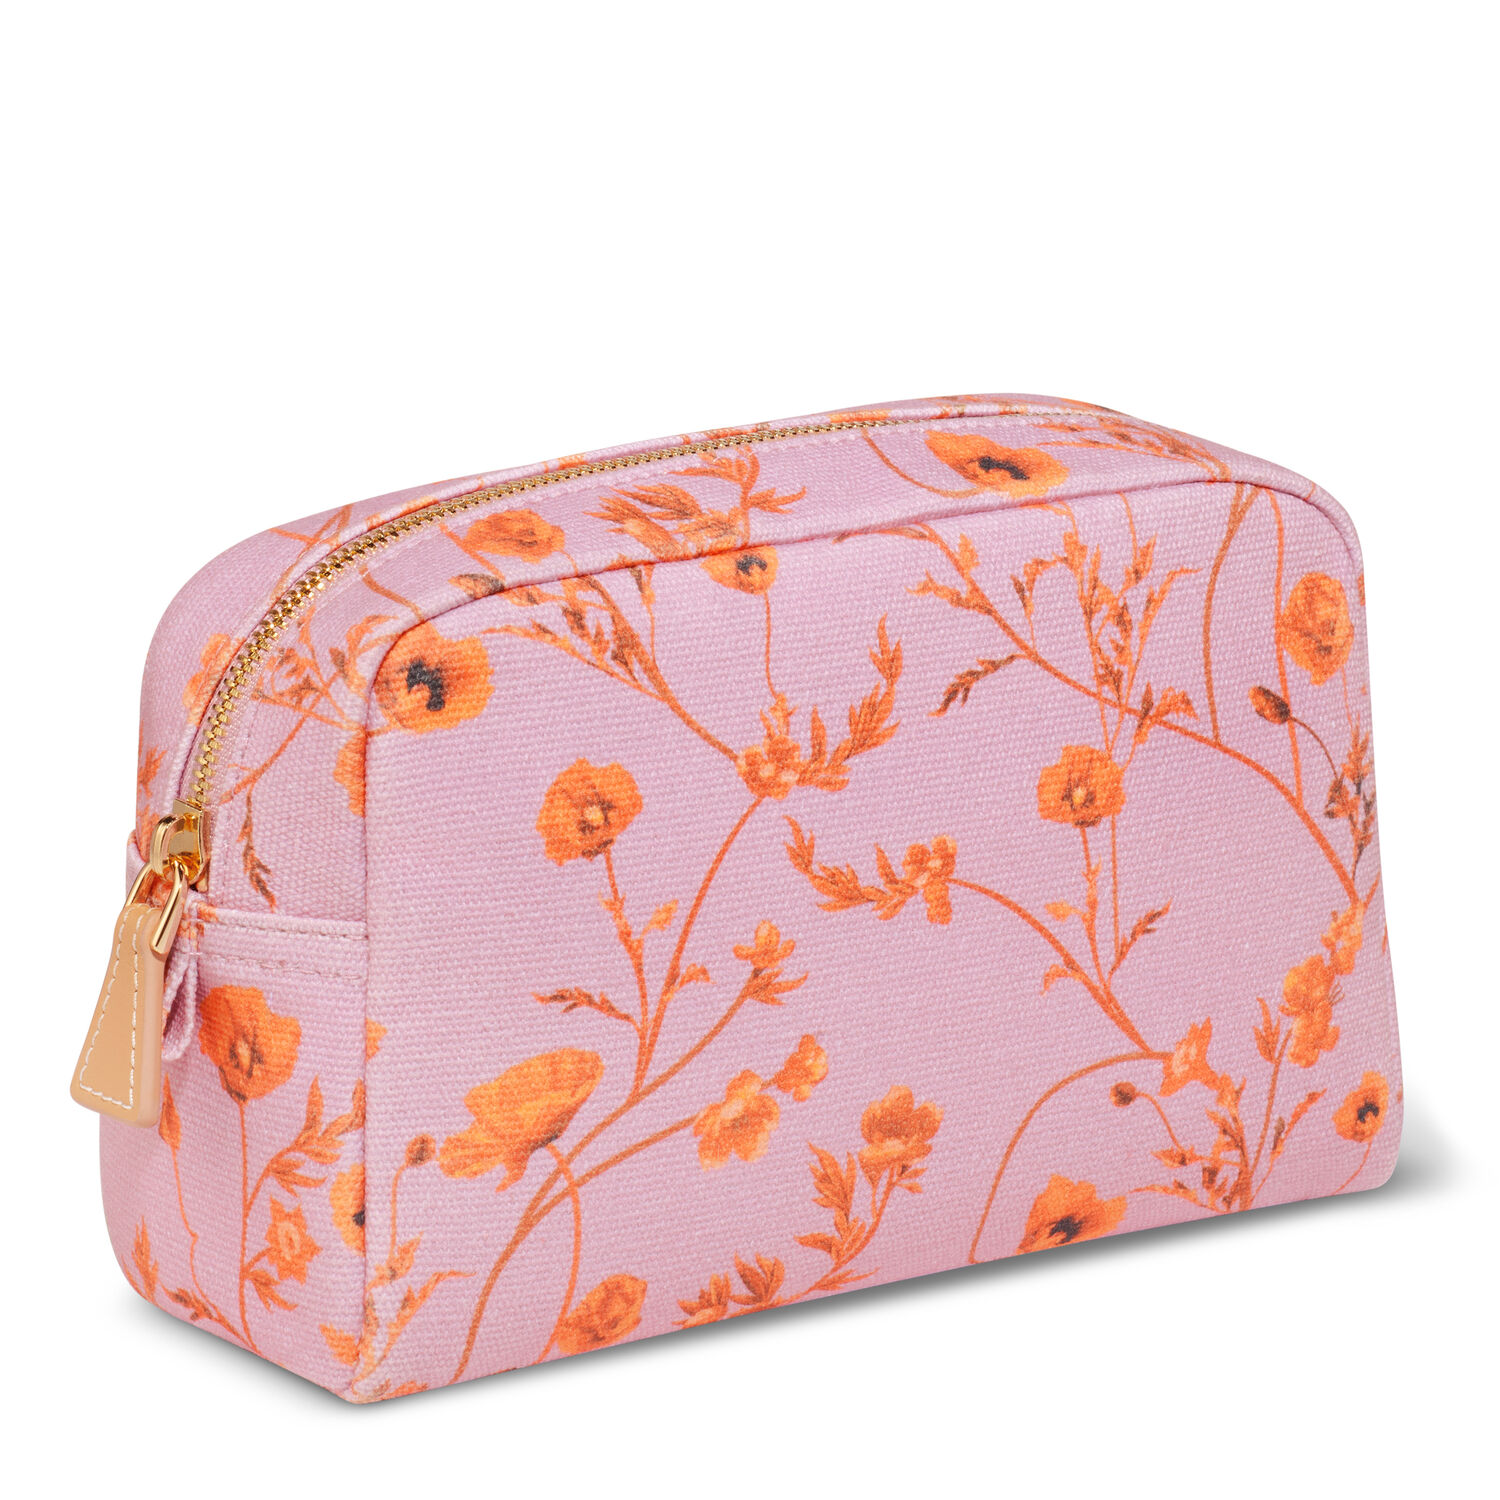 Candelaria Beauty Bag